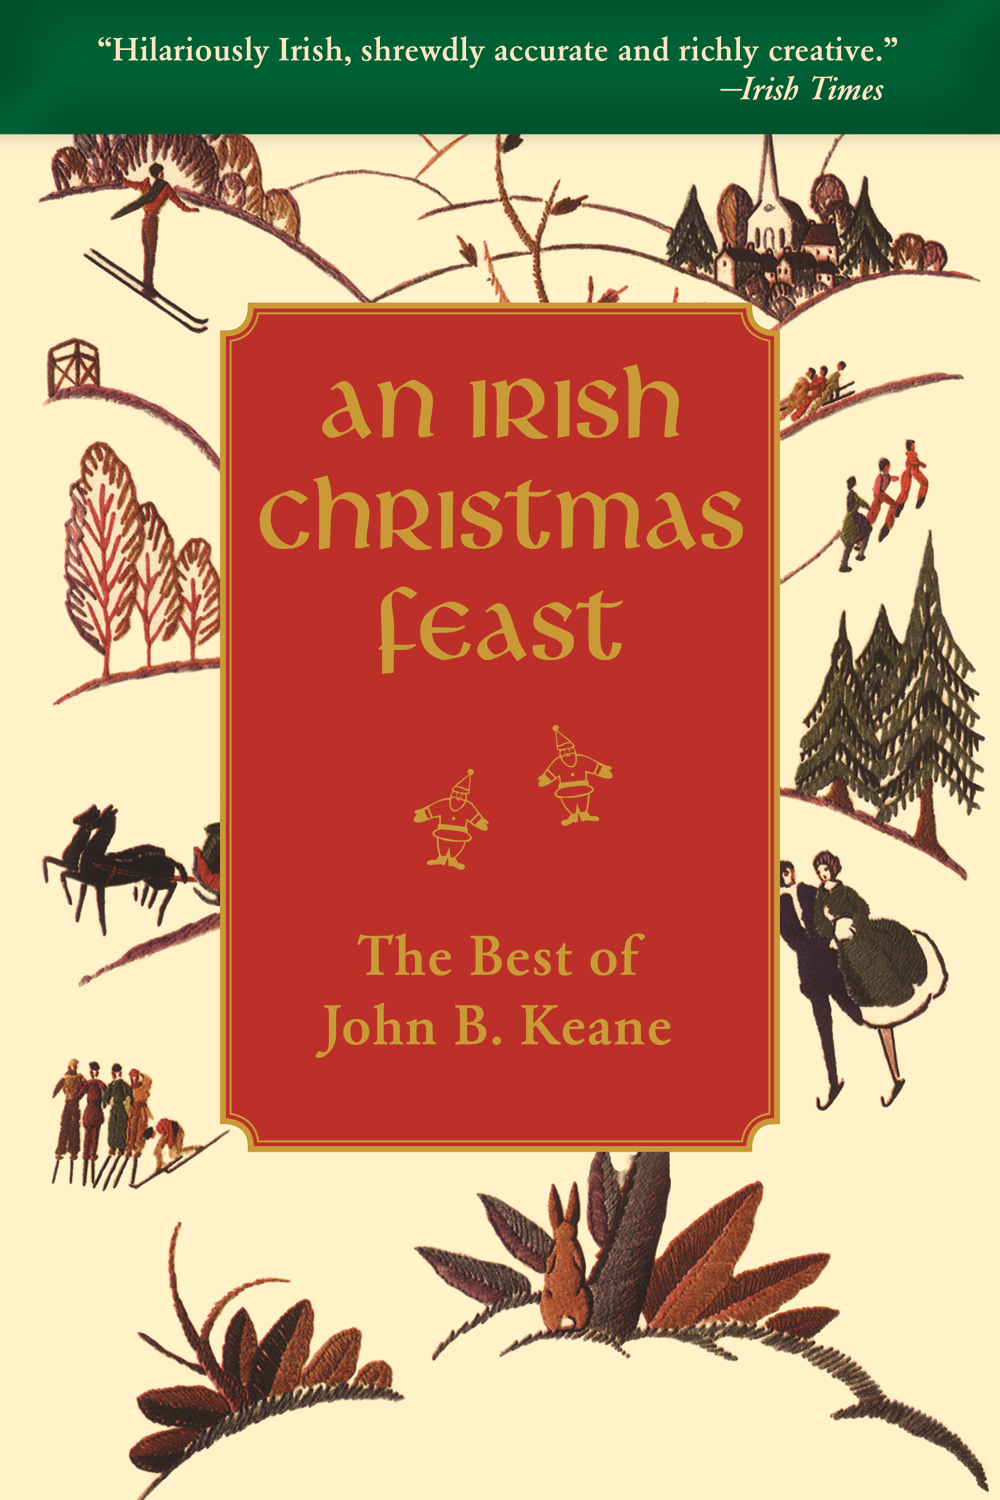 An Irish Christmas Feast; The Best of John B. Keane